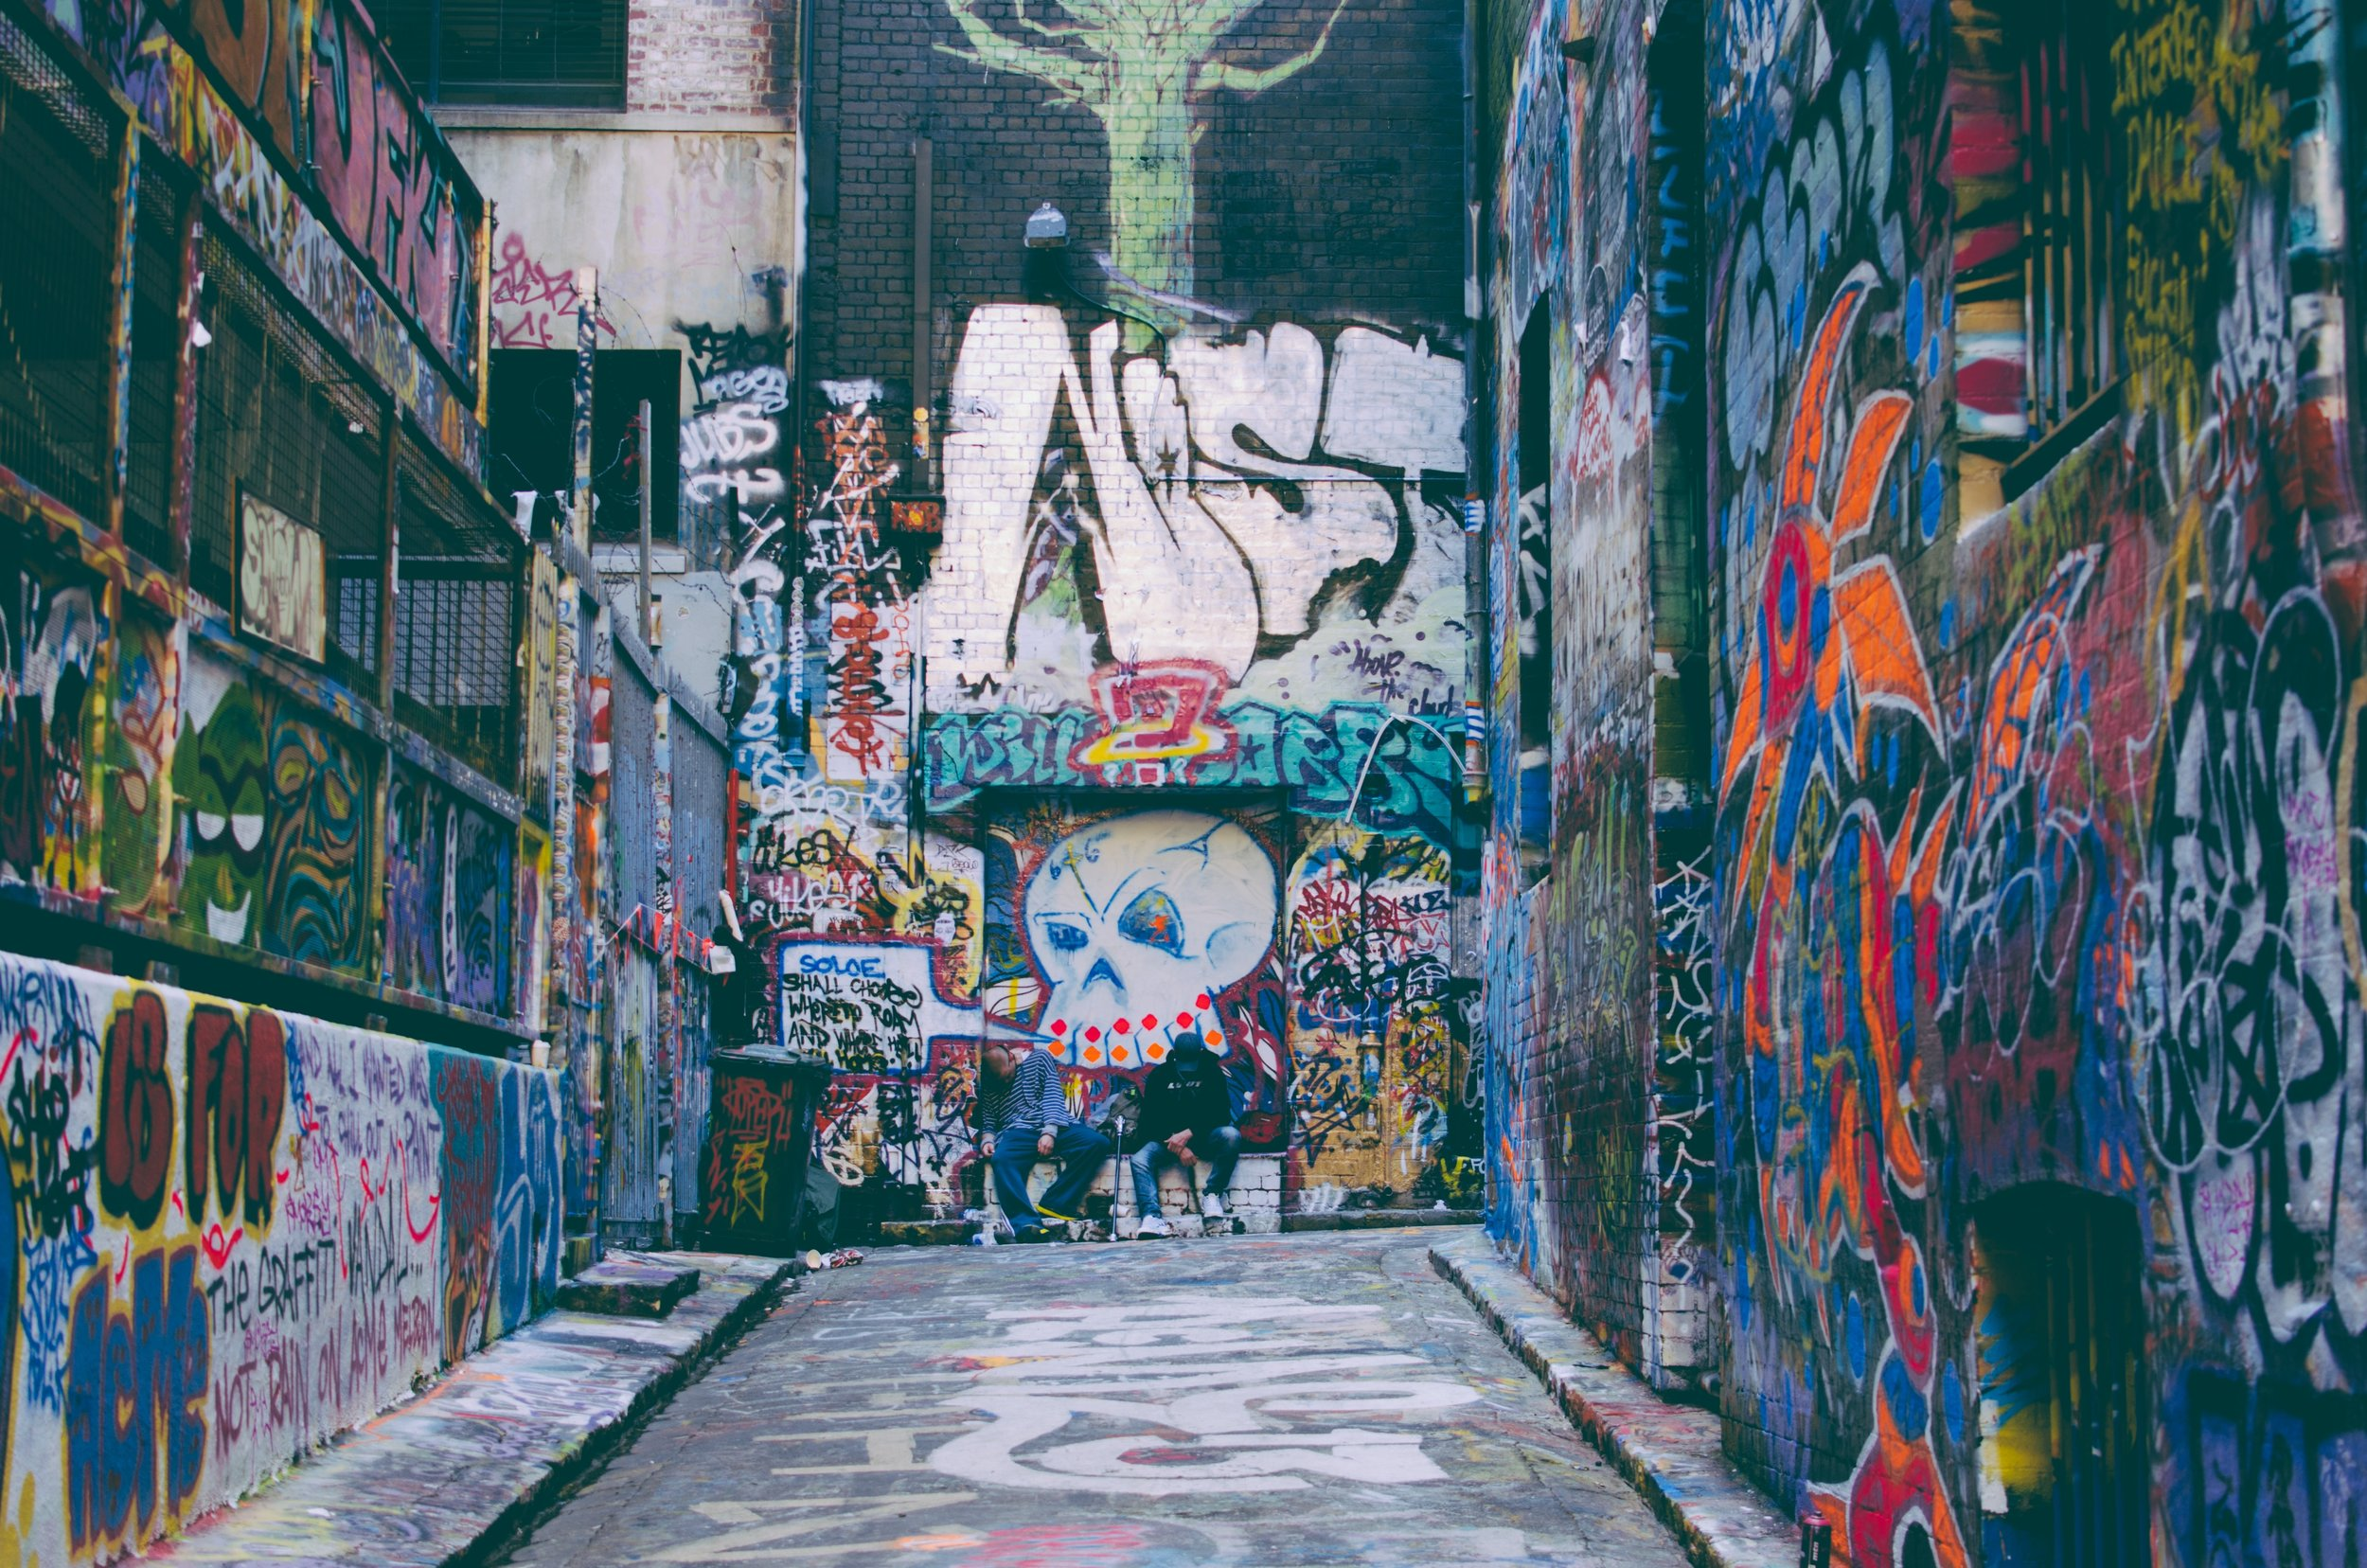 Melbourne's street art in the lane-ways